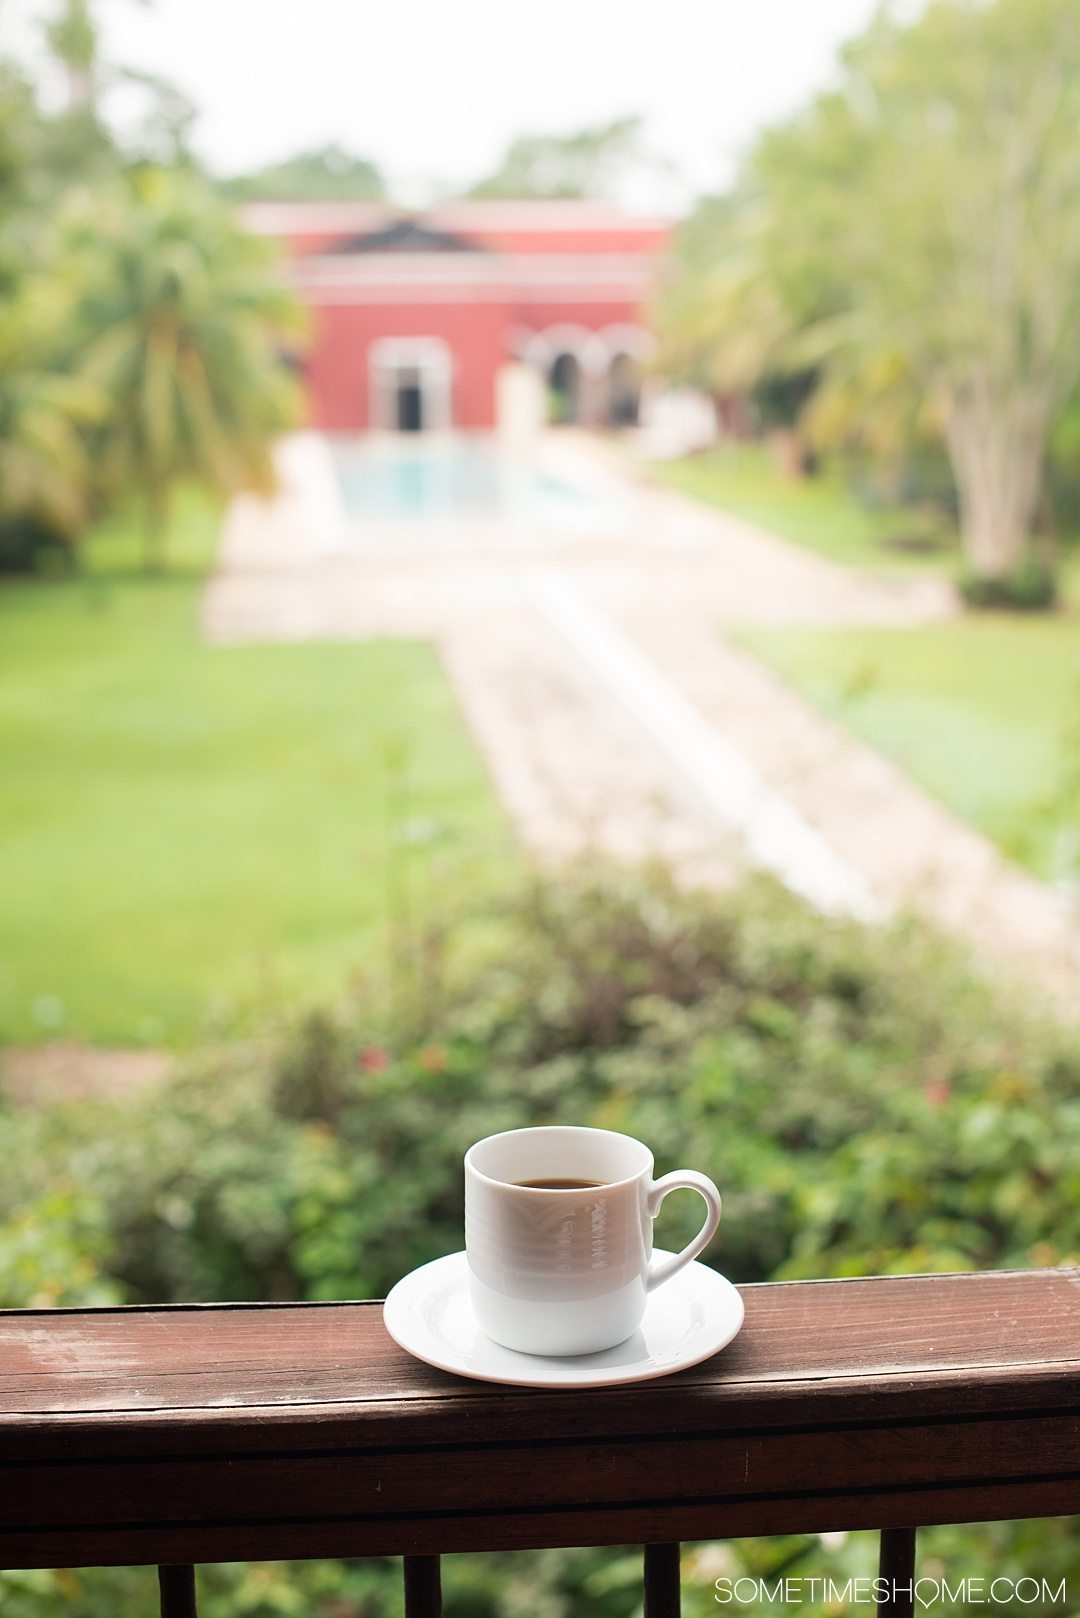 Hacienda Temozon Review and Photos on Sometimes Home travel blog. Picture of morning coffee at the Starwood resort hotel restaurant.